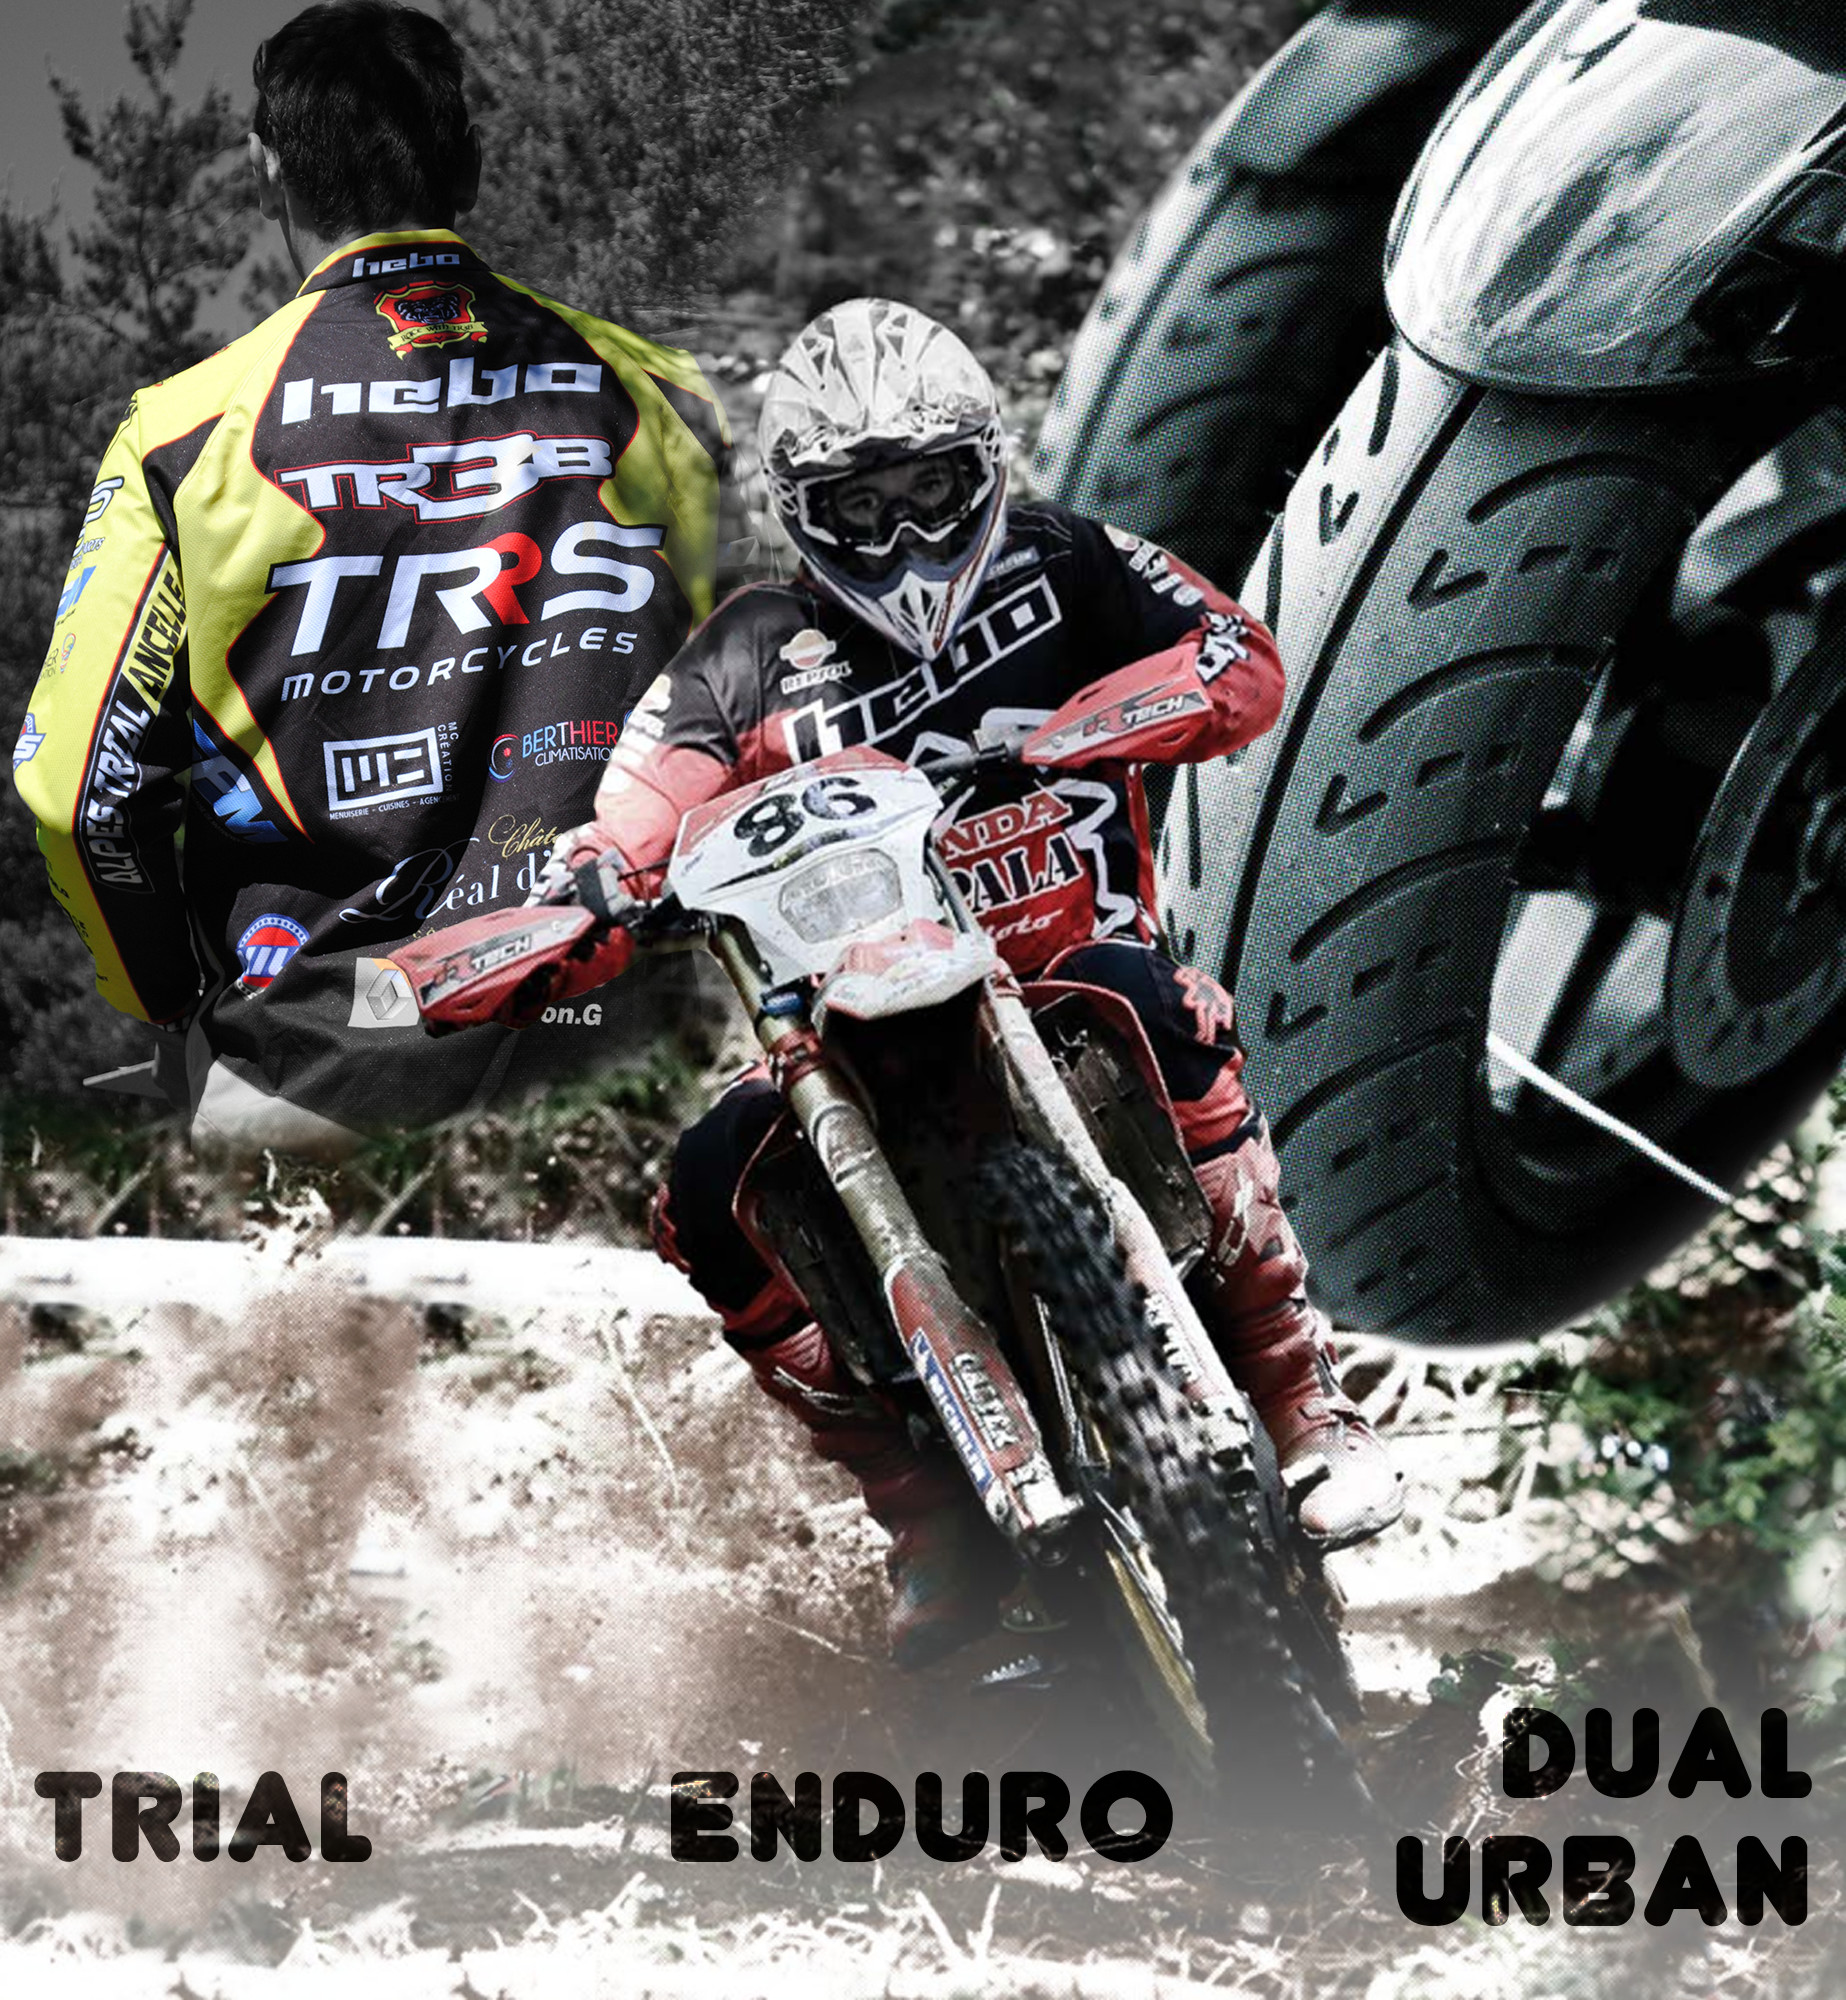 trial_enduro_dual_urban